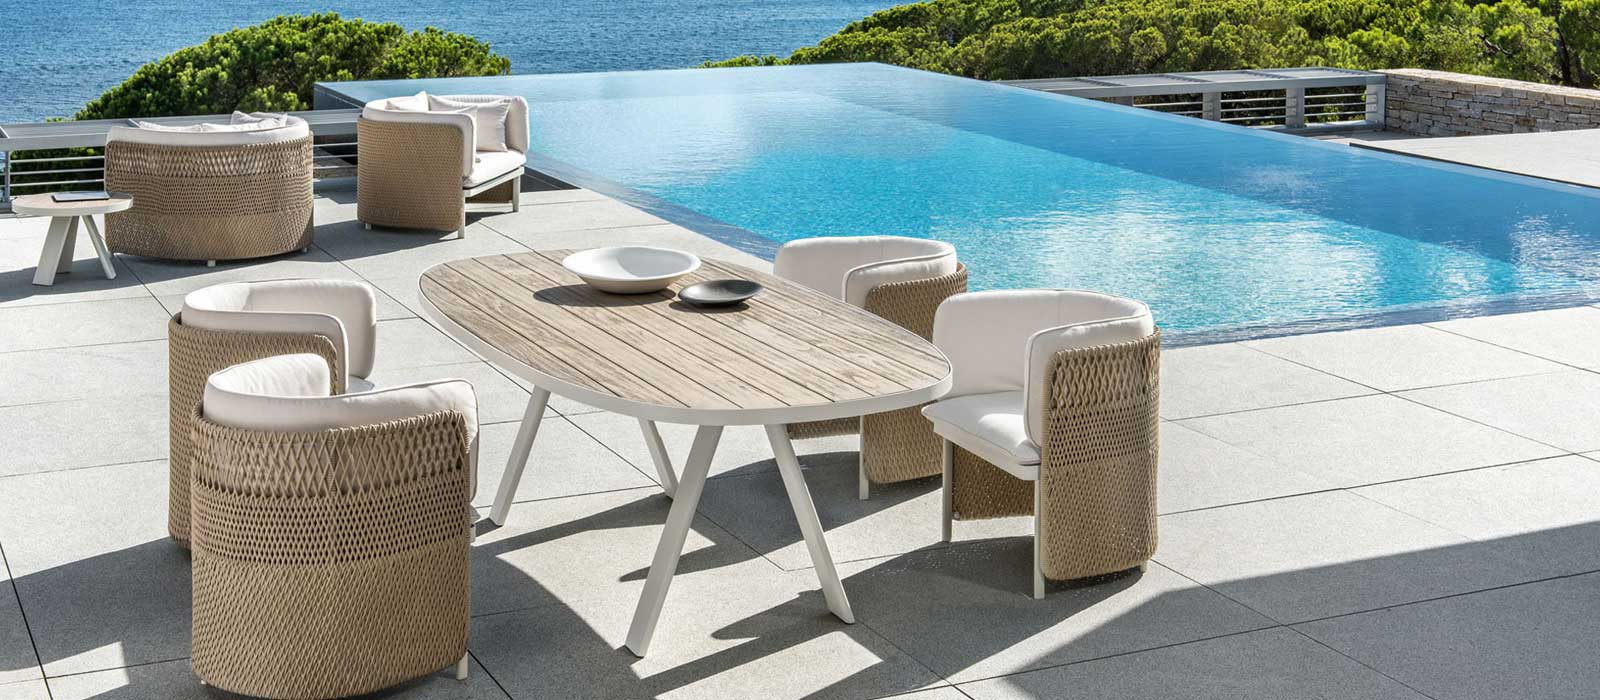 Poolside Furniture Manufacturers in Daman